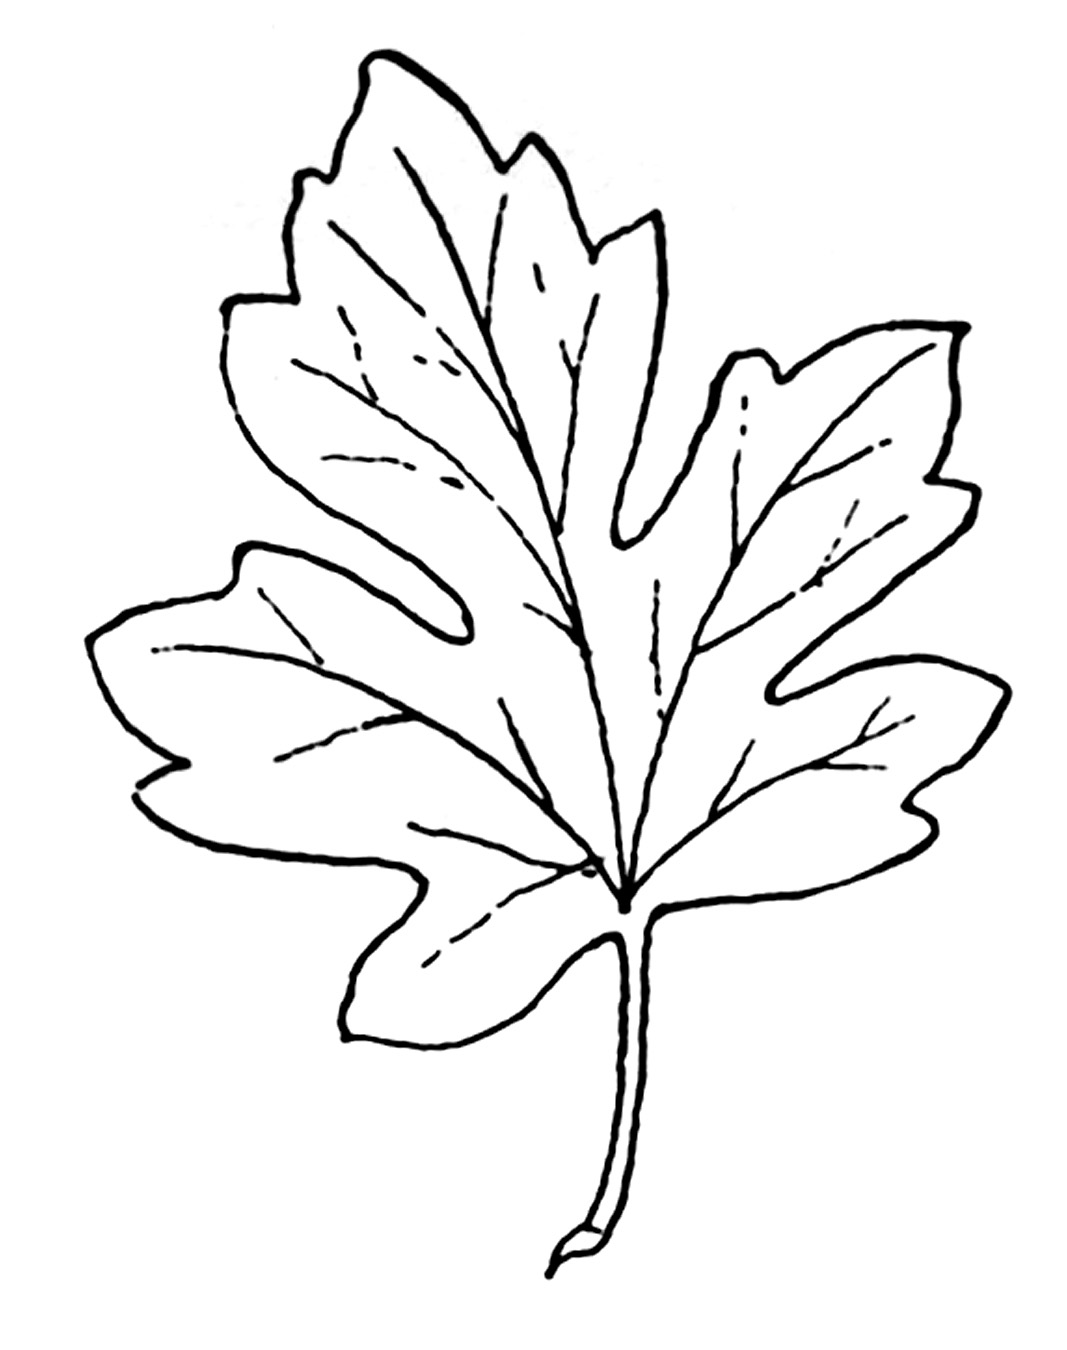 Abstract maple leaf clipart coloring black and white vector royalty free library Black And White Leaves Clipart Group with 81+ items vector royalty free library